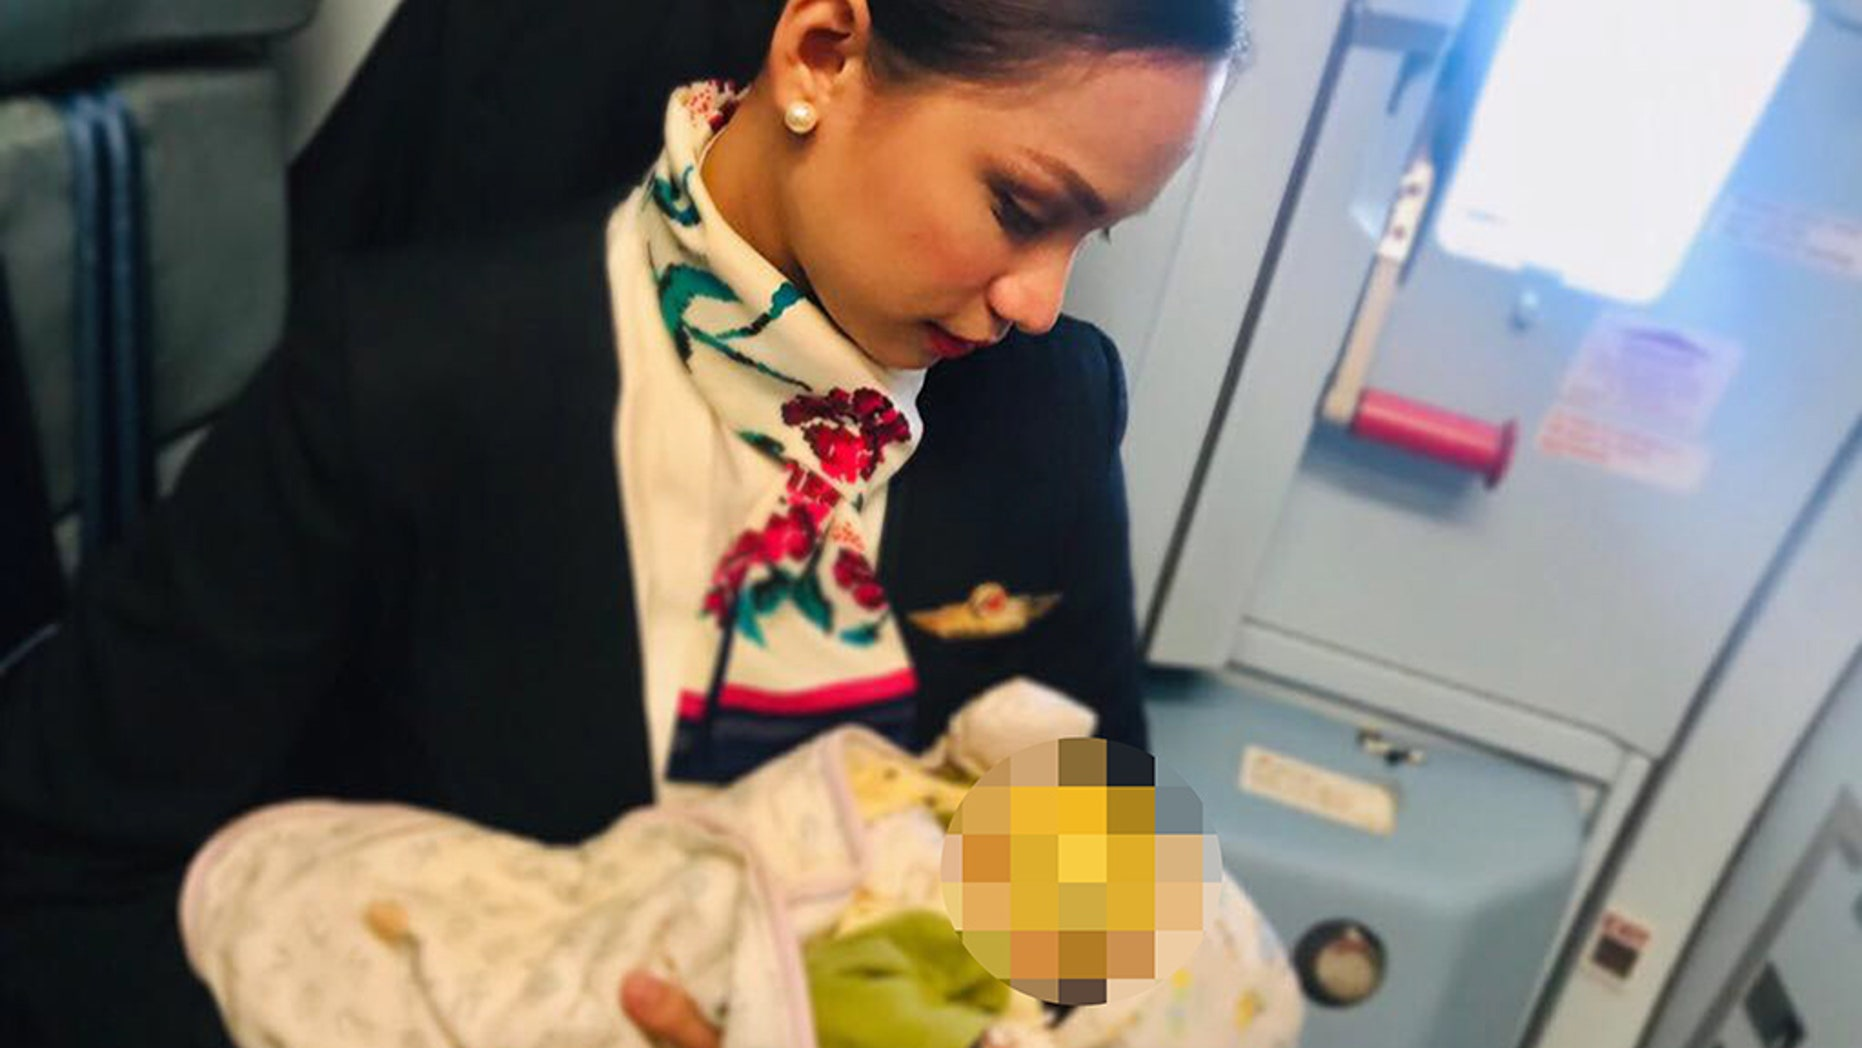 Flight attendant breastfeeds passenger's baby, photo goes viral